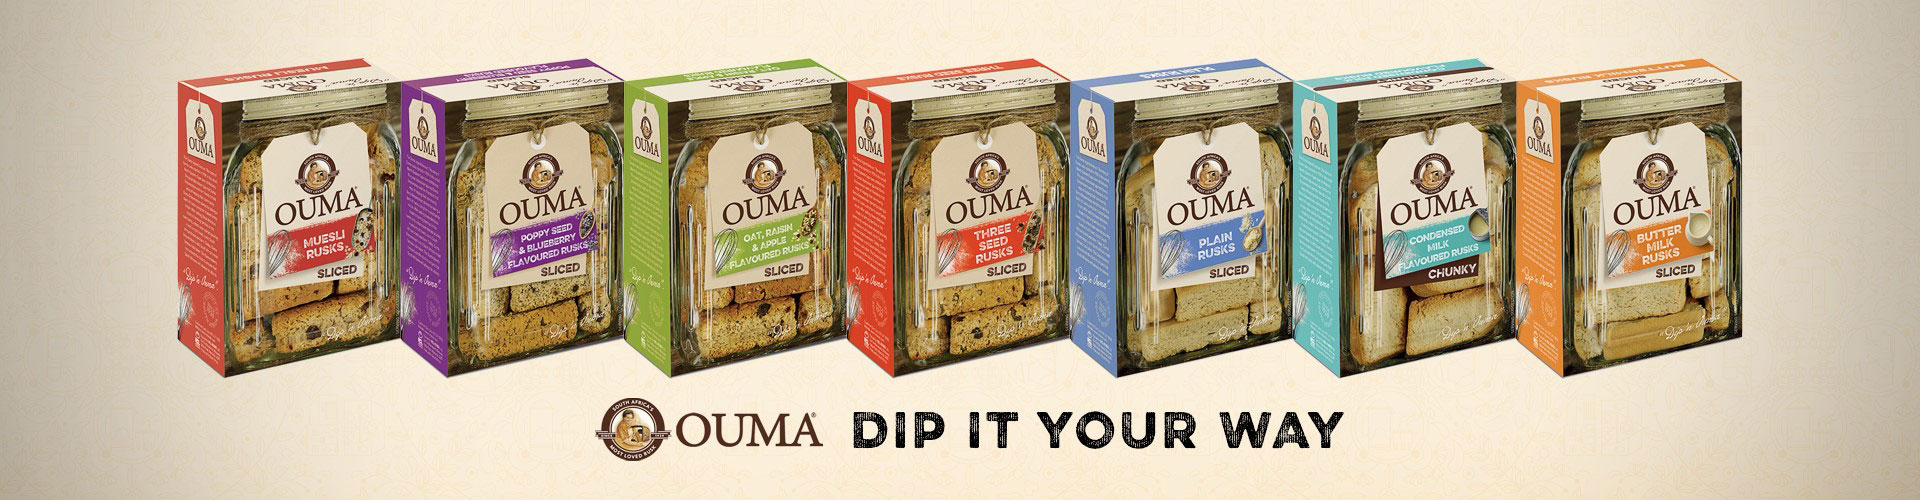 Ouma Rusks, Dip it your way!